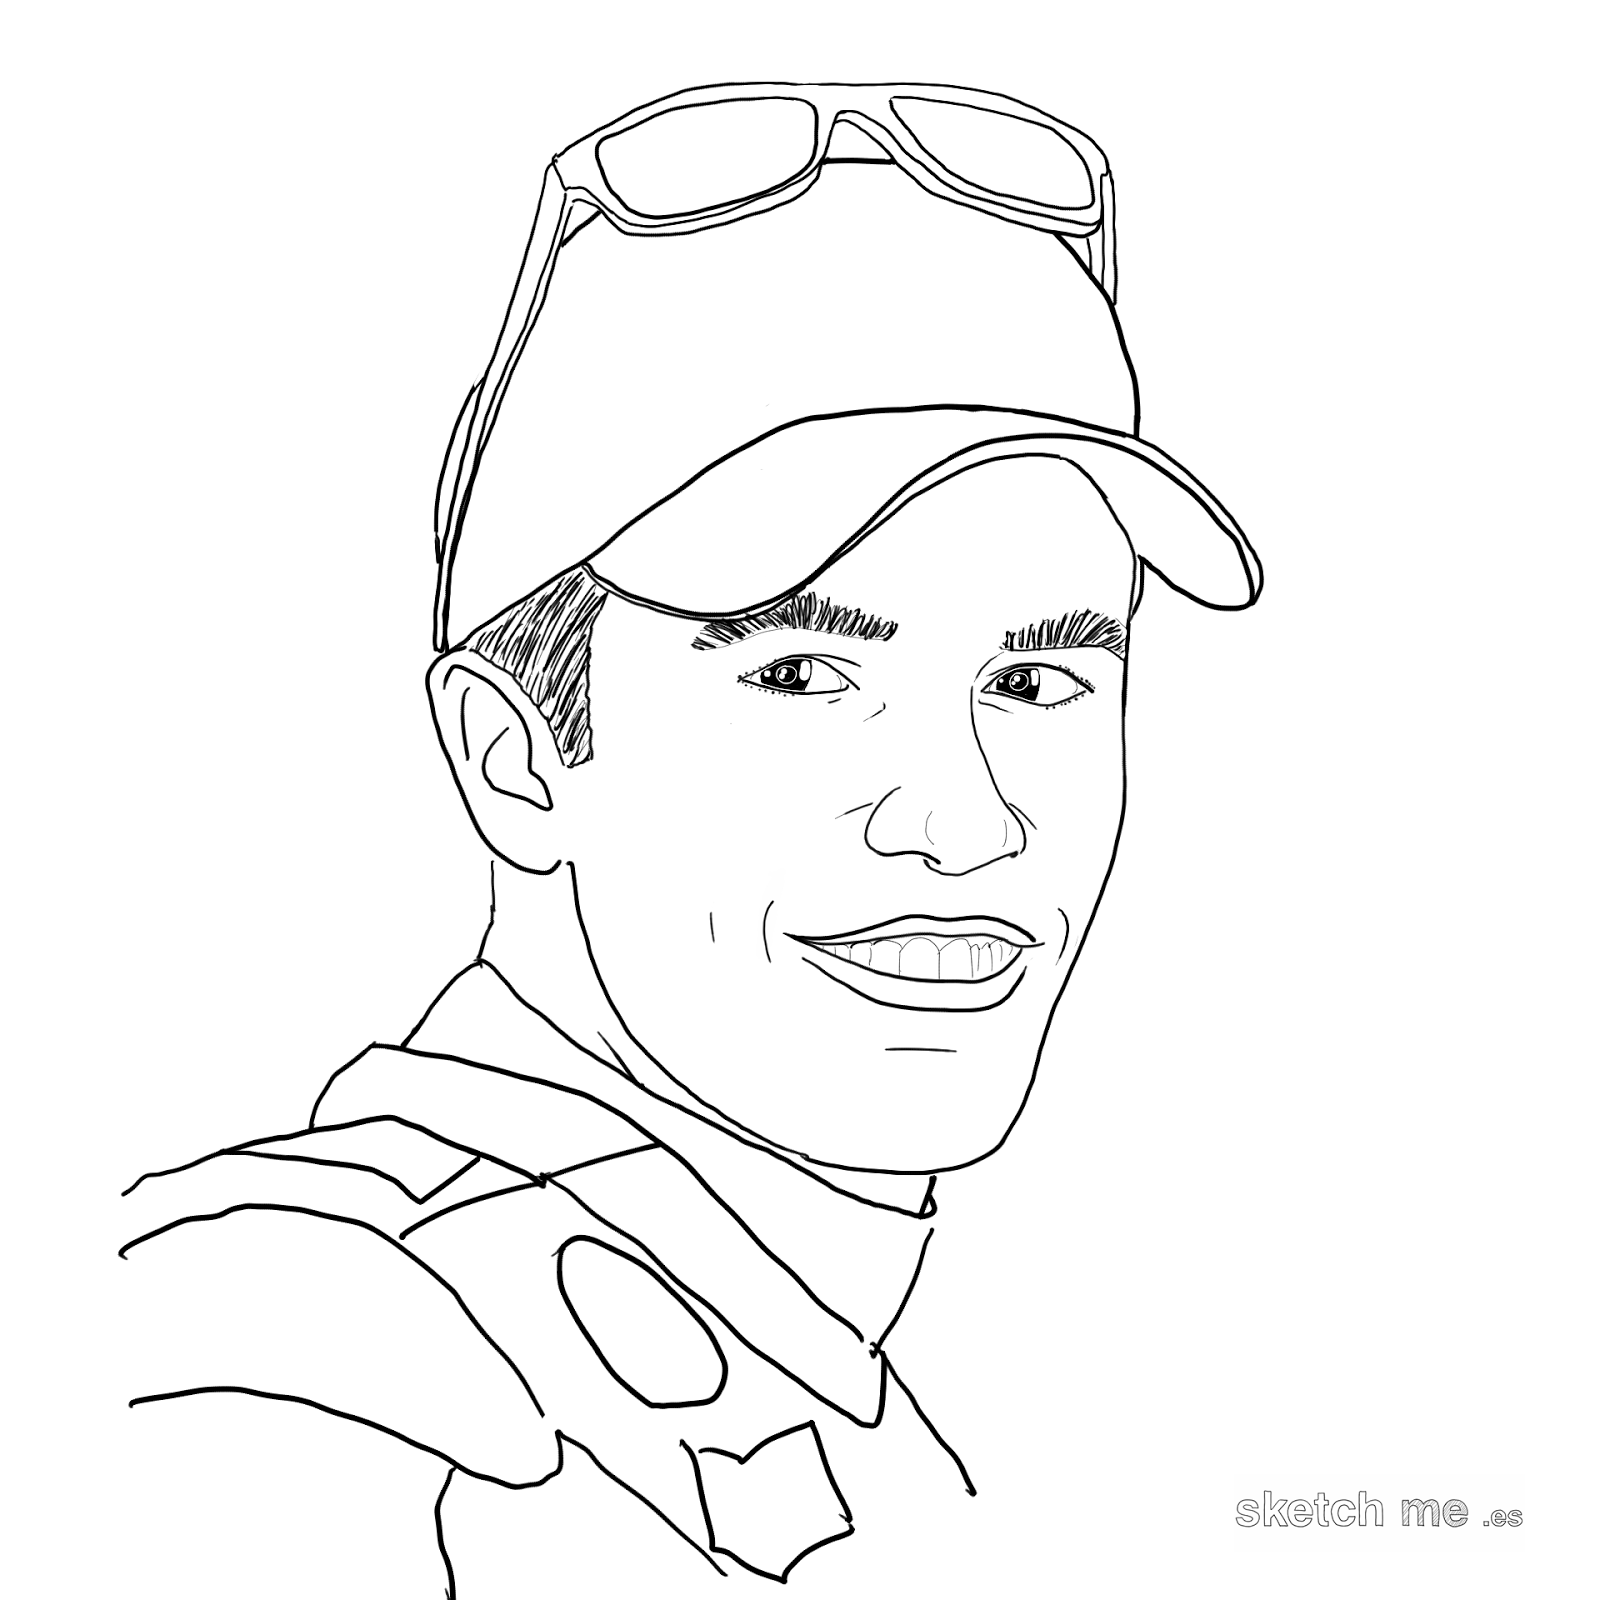 marc-marquez-sketch-me-custom-portraits-for-facebook-and-twitter-profiles-retratos-personalizados-dibujados-a-mano